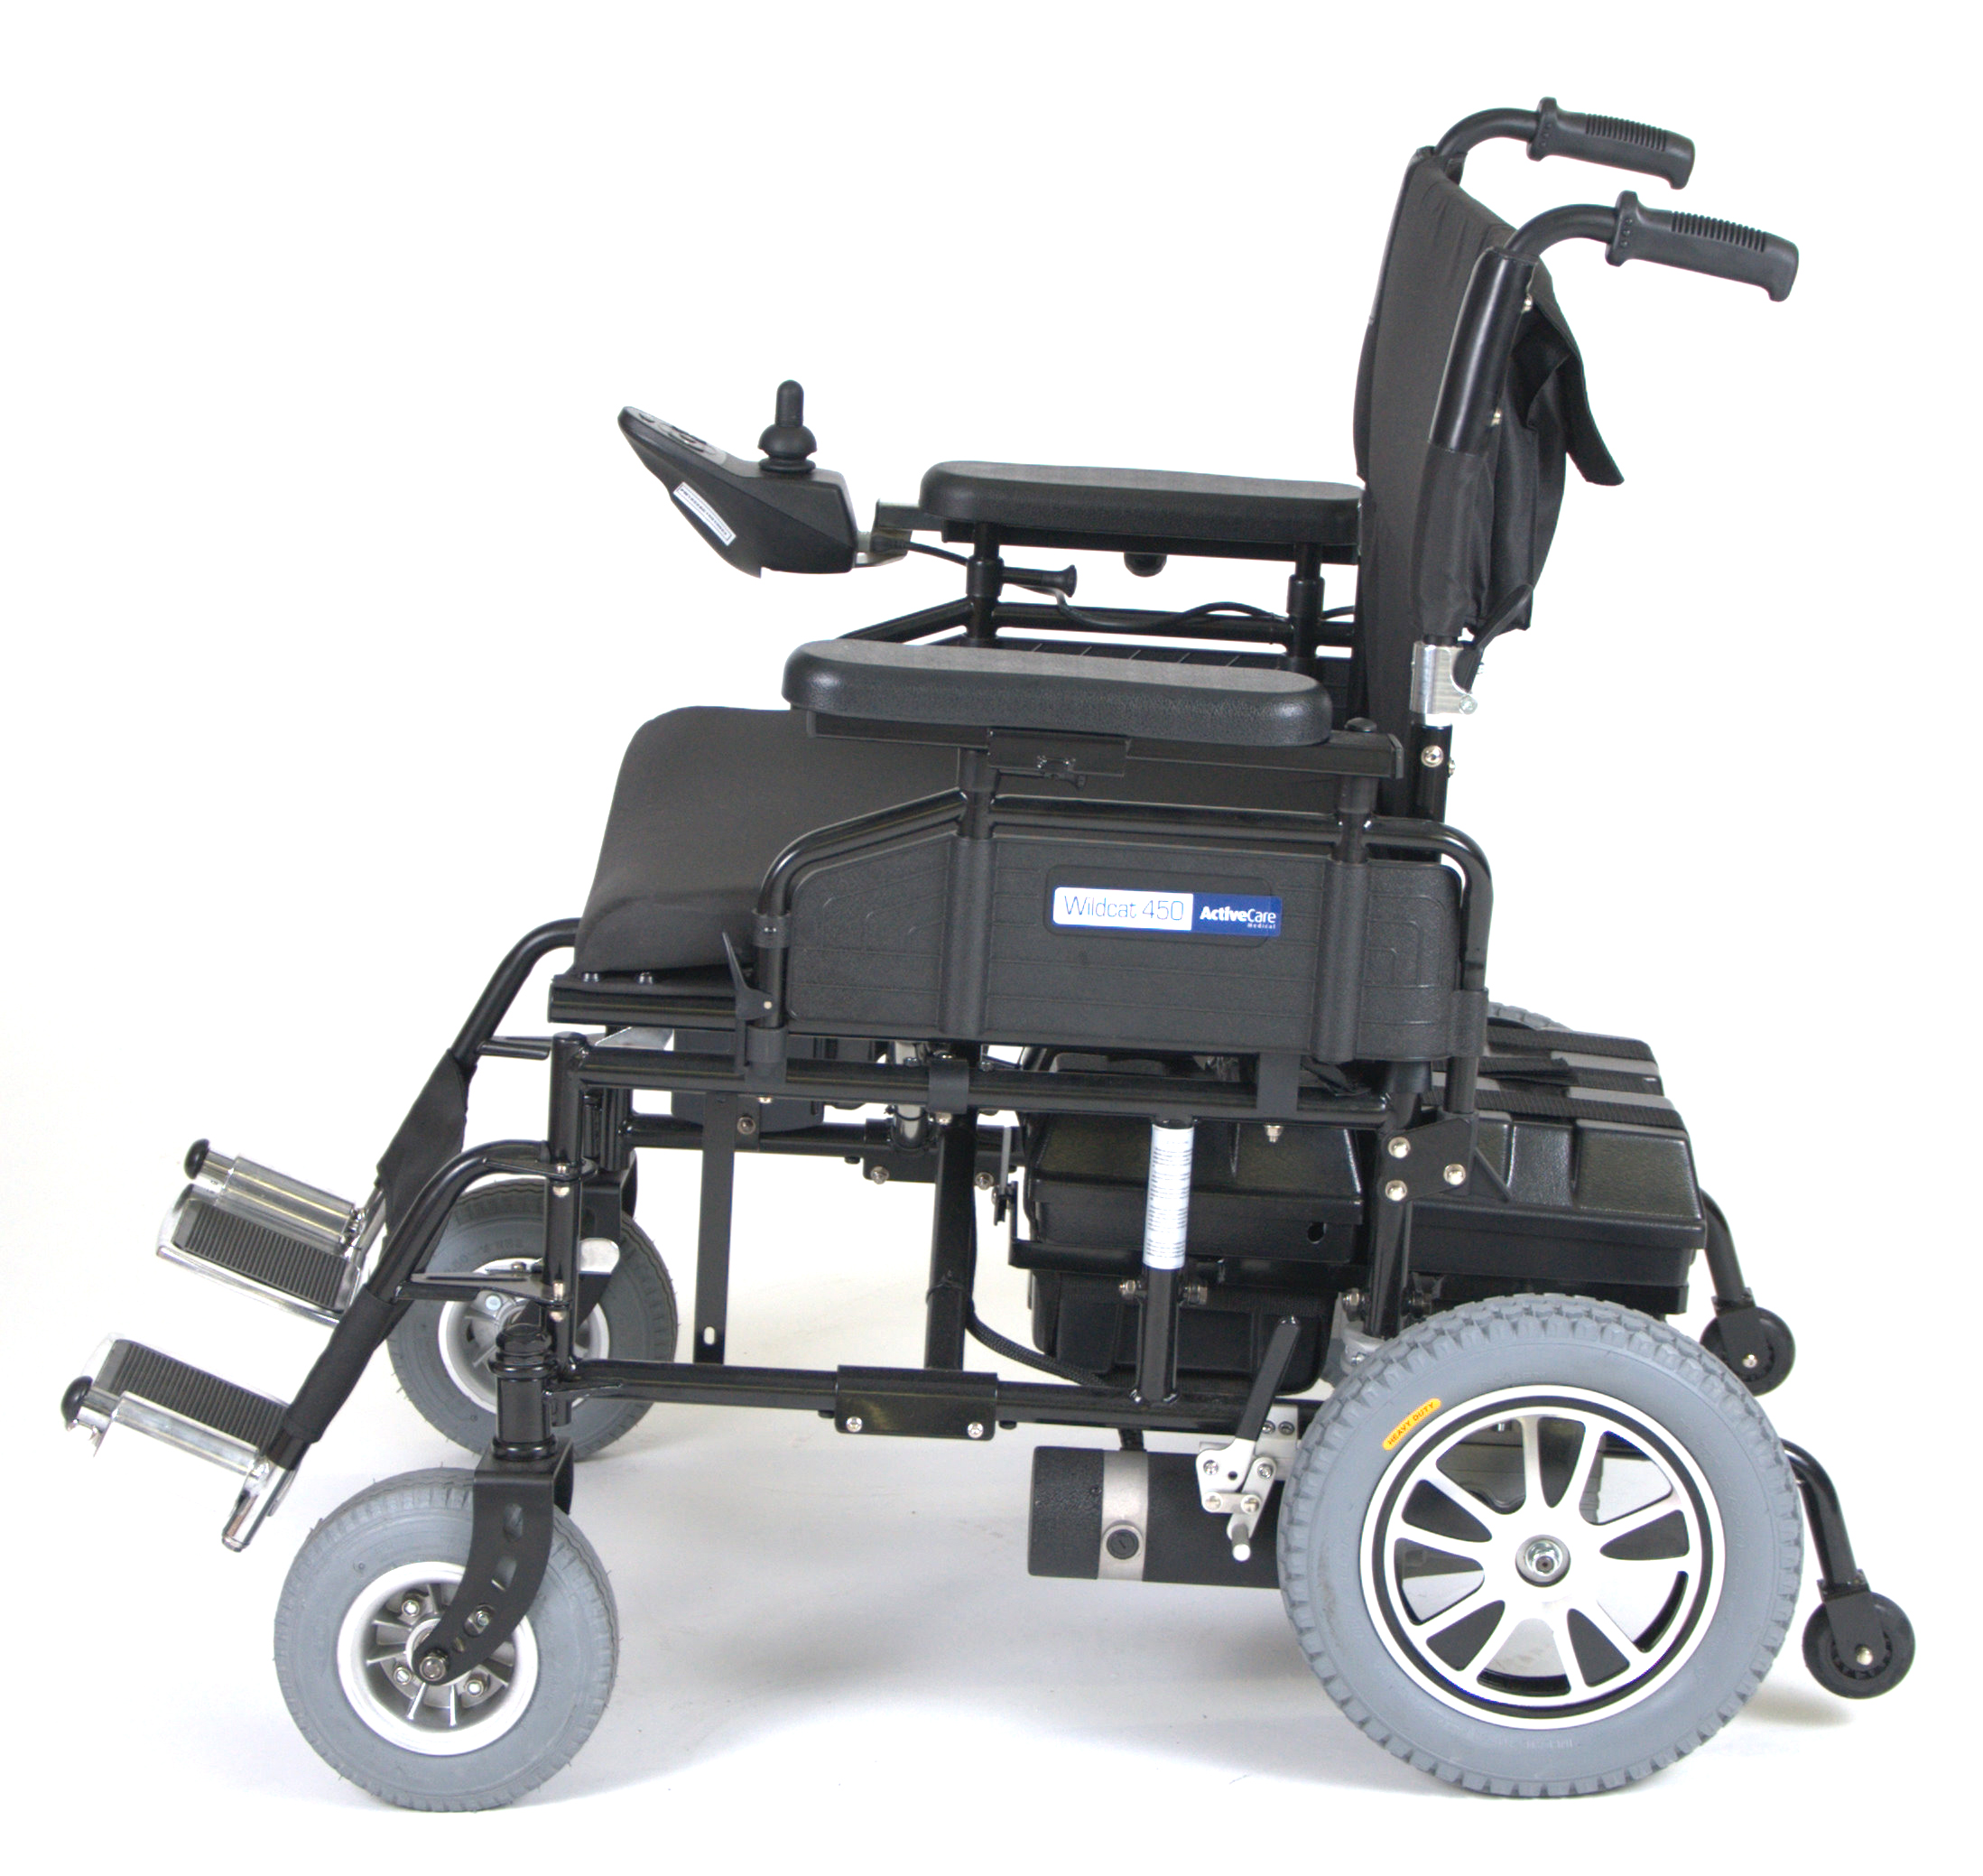 wildcat-450-heavy-duty-folding-power-wheelchair-wildcat450-22-drive-medical-3.jpg